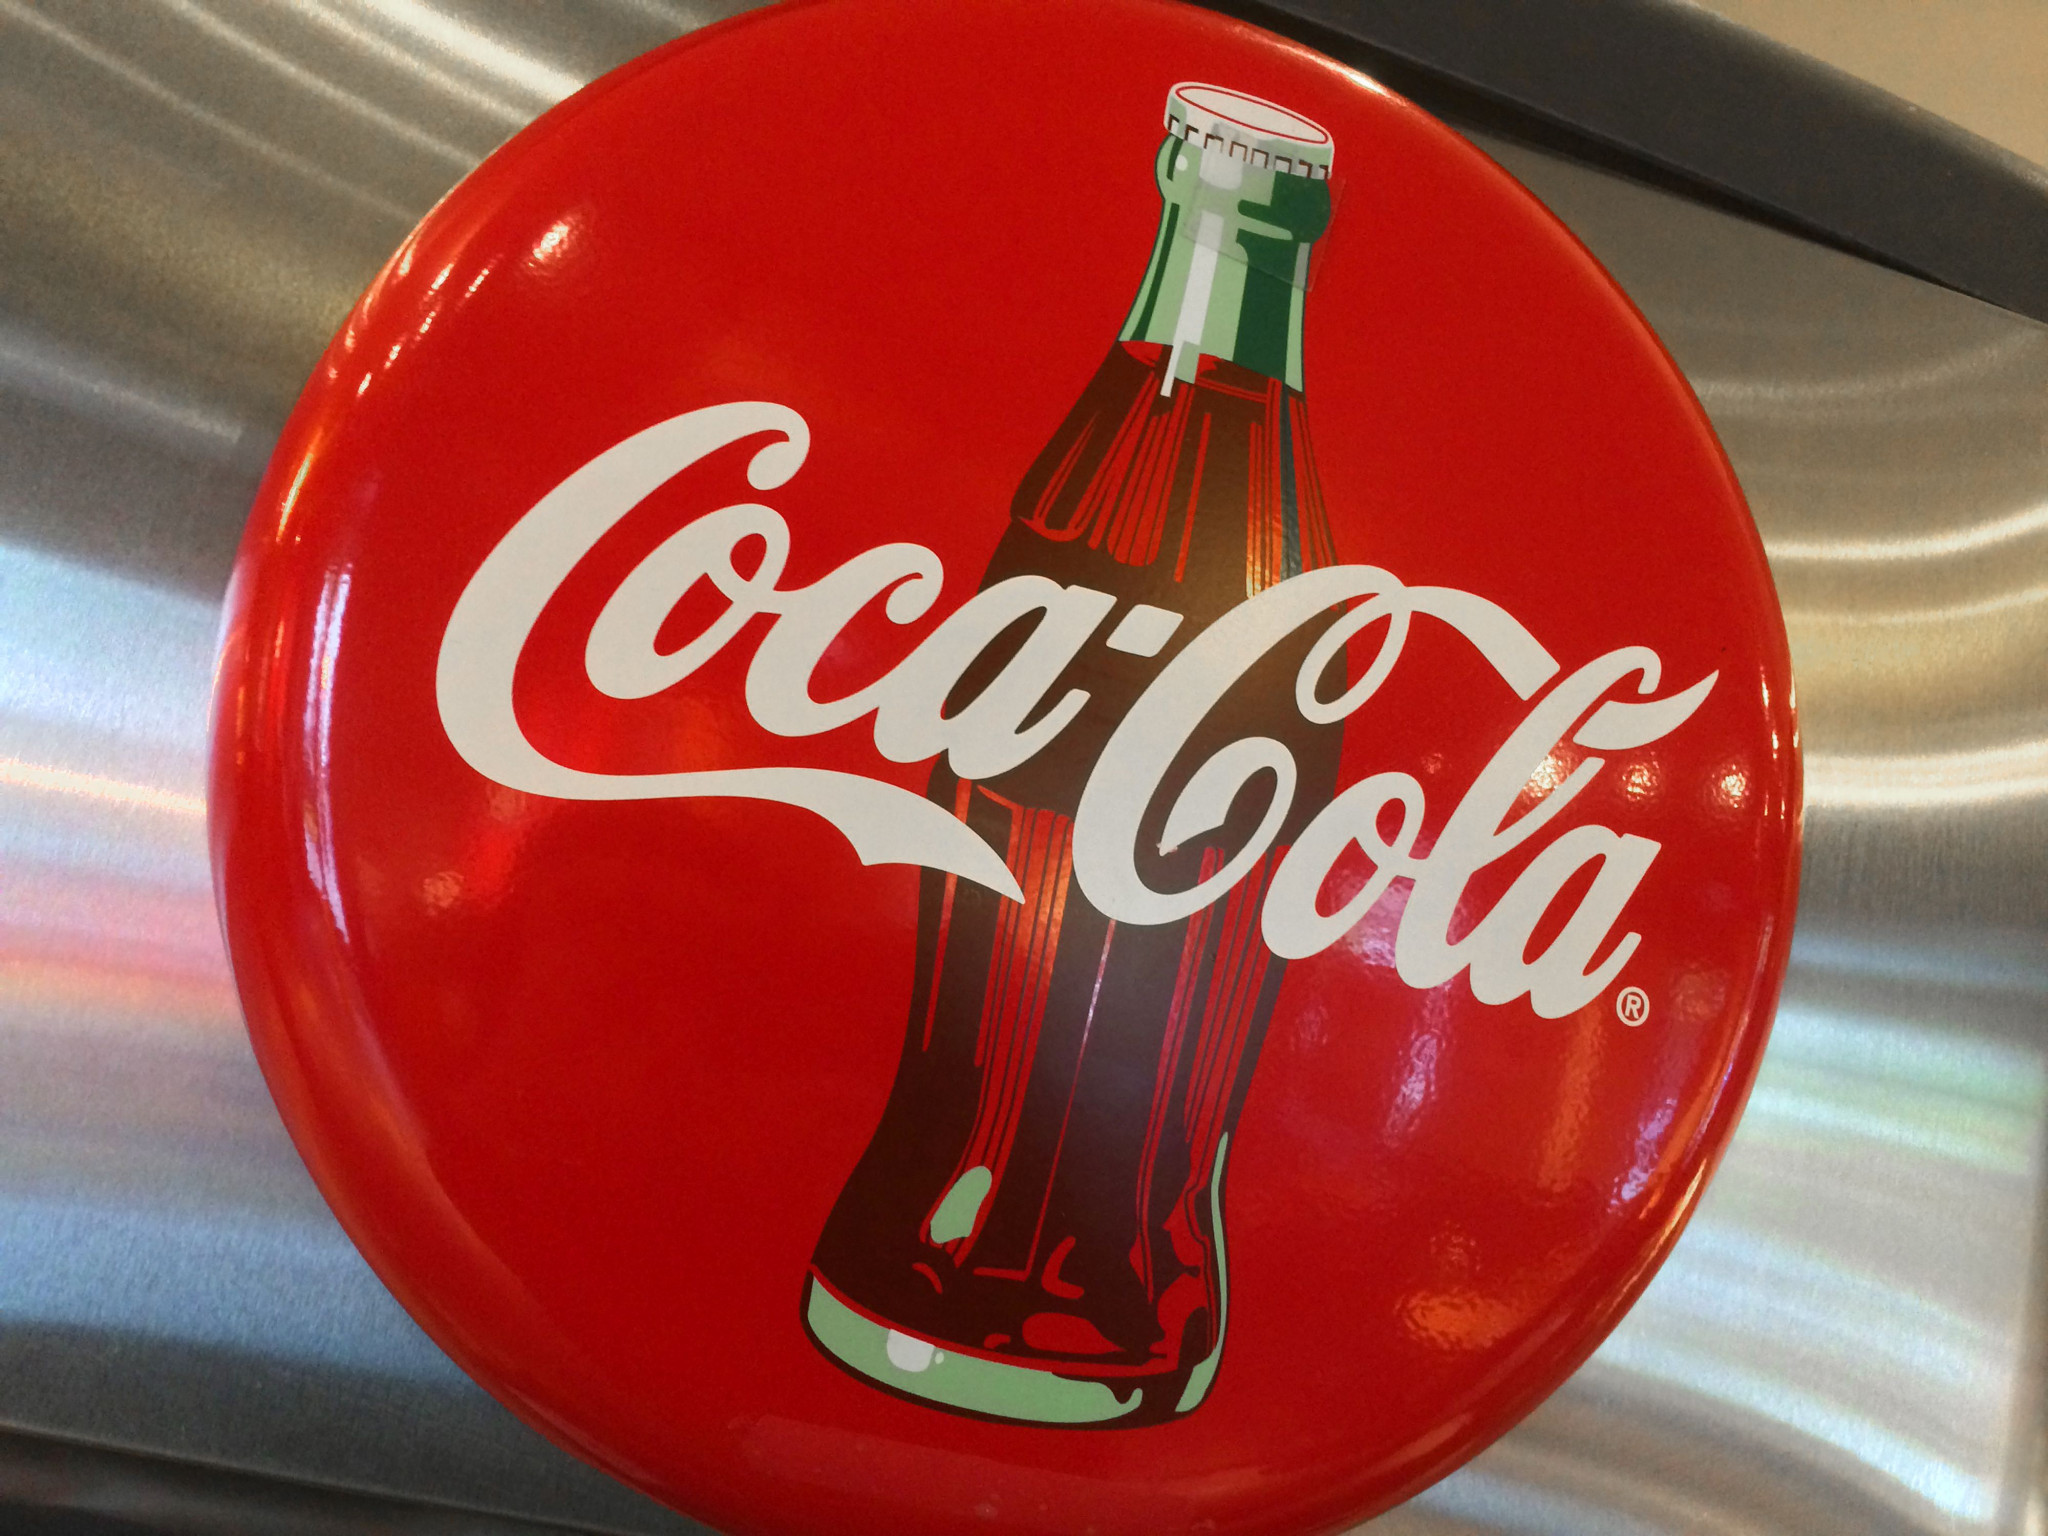 International Paralympic Committee and Coca-Cola announce worldwide partnership